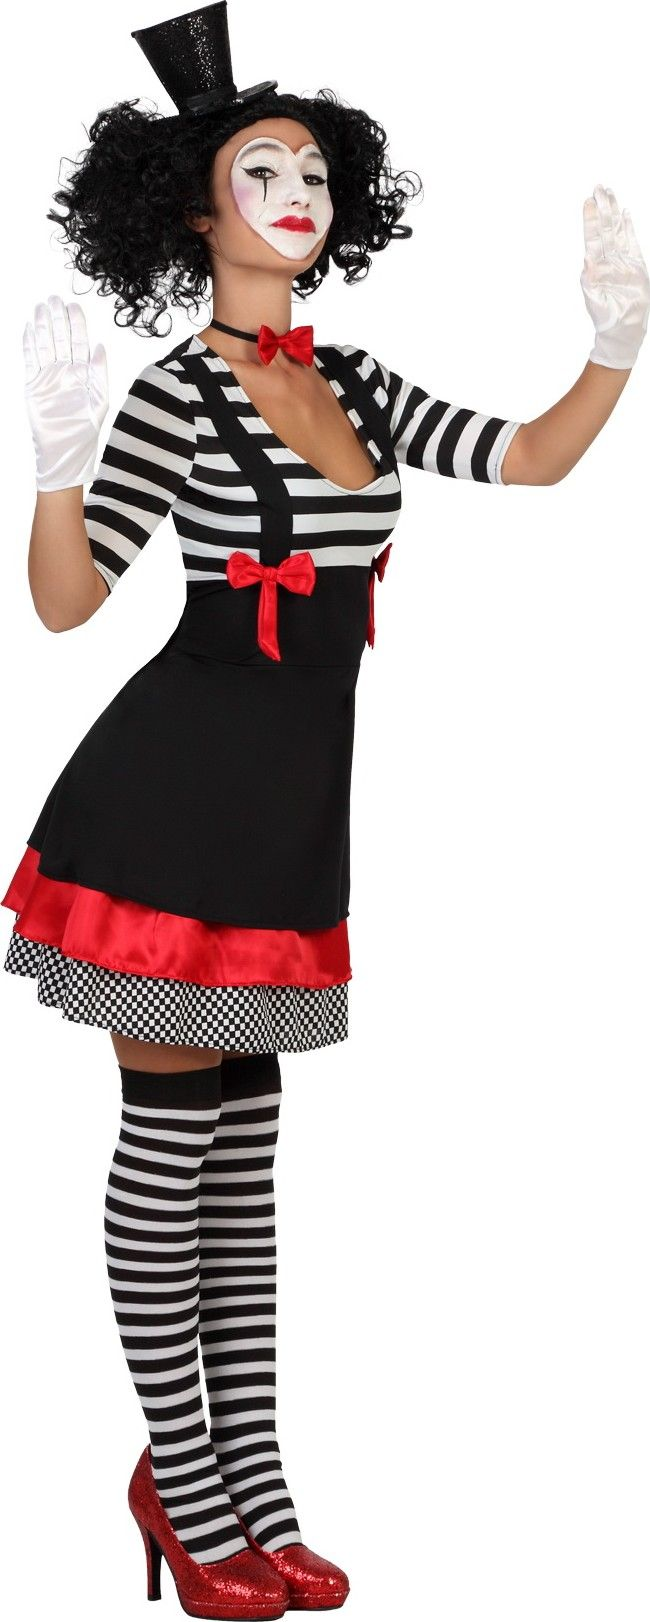 best 25 mime costume ideas on pinterest mime halloween costume mime makeup and clown costume diy. Black Bedroom Furniture Sets. Home Design Ideas